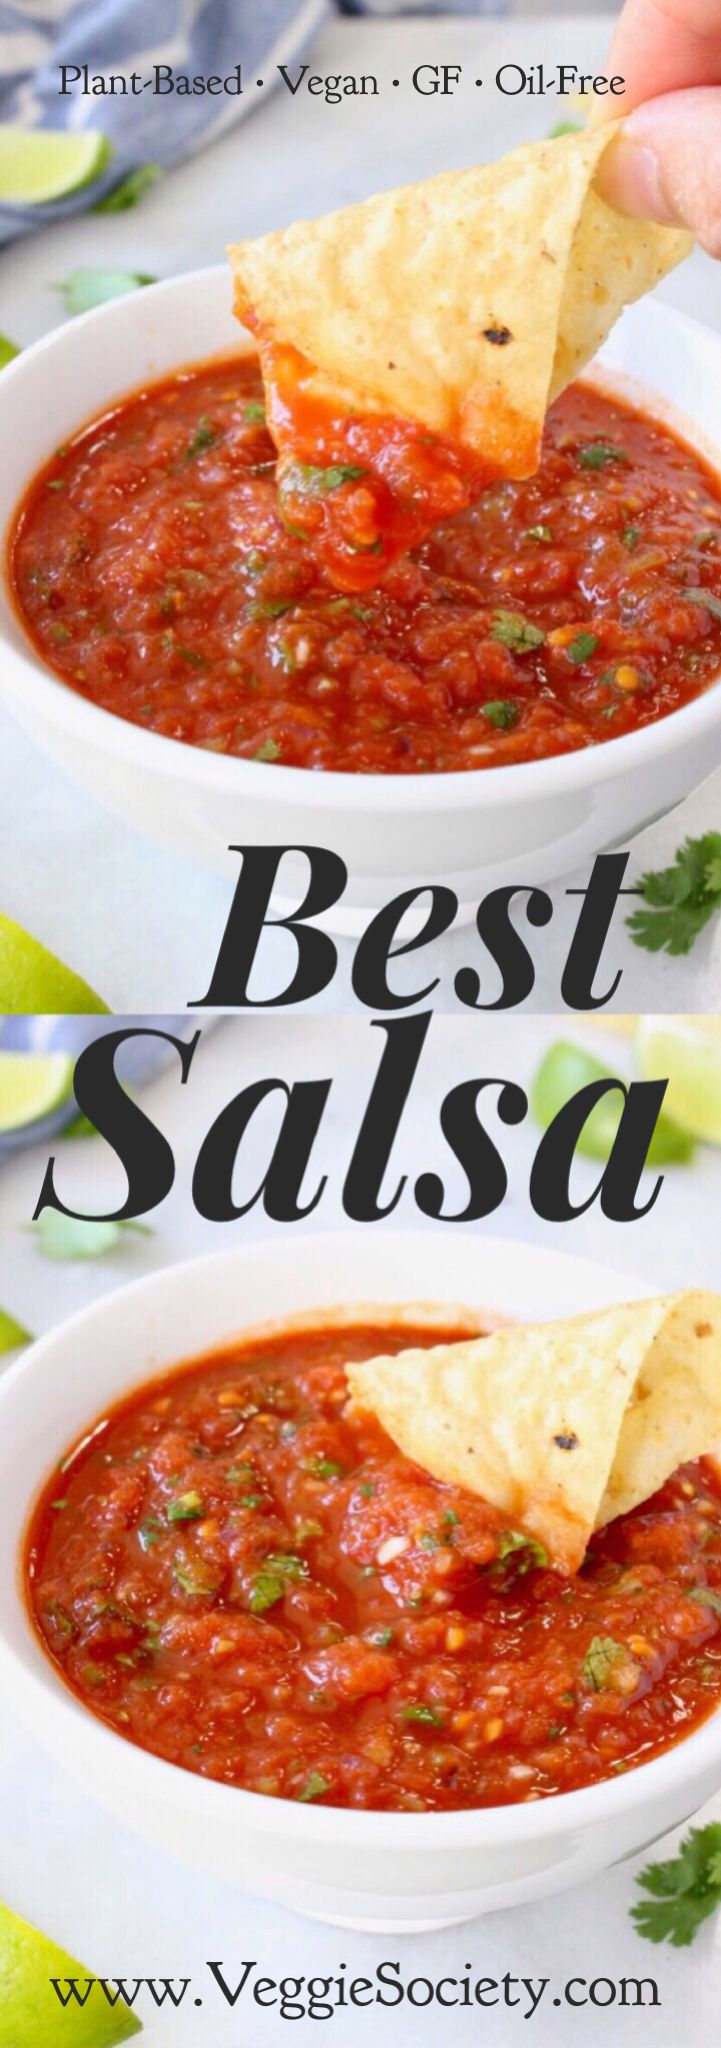 Very good + quick blender salsa recipe | Used this to clean out my fridge, and left it a bit chunky